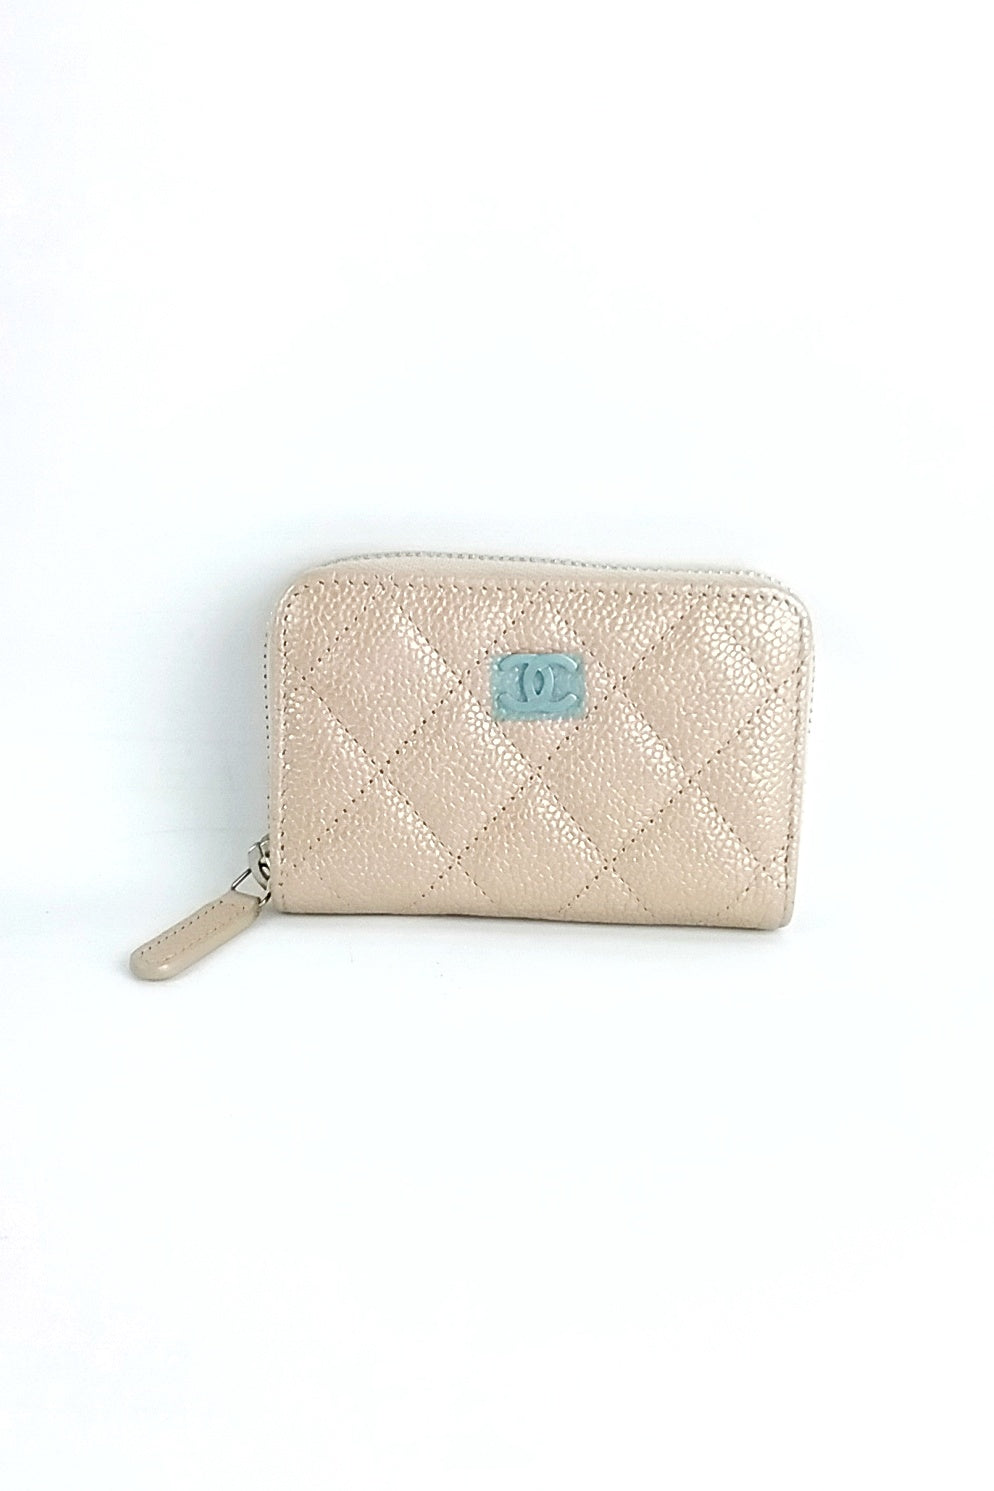 Nude Caviar Leather Cardholder SHW